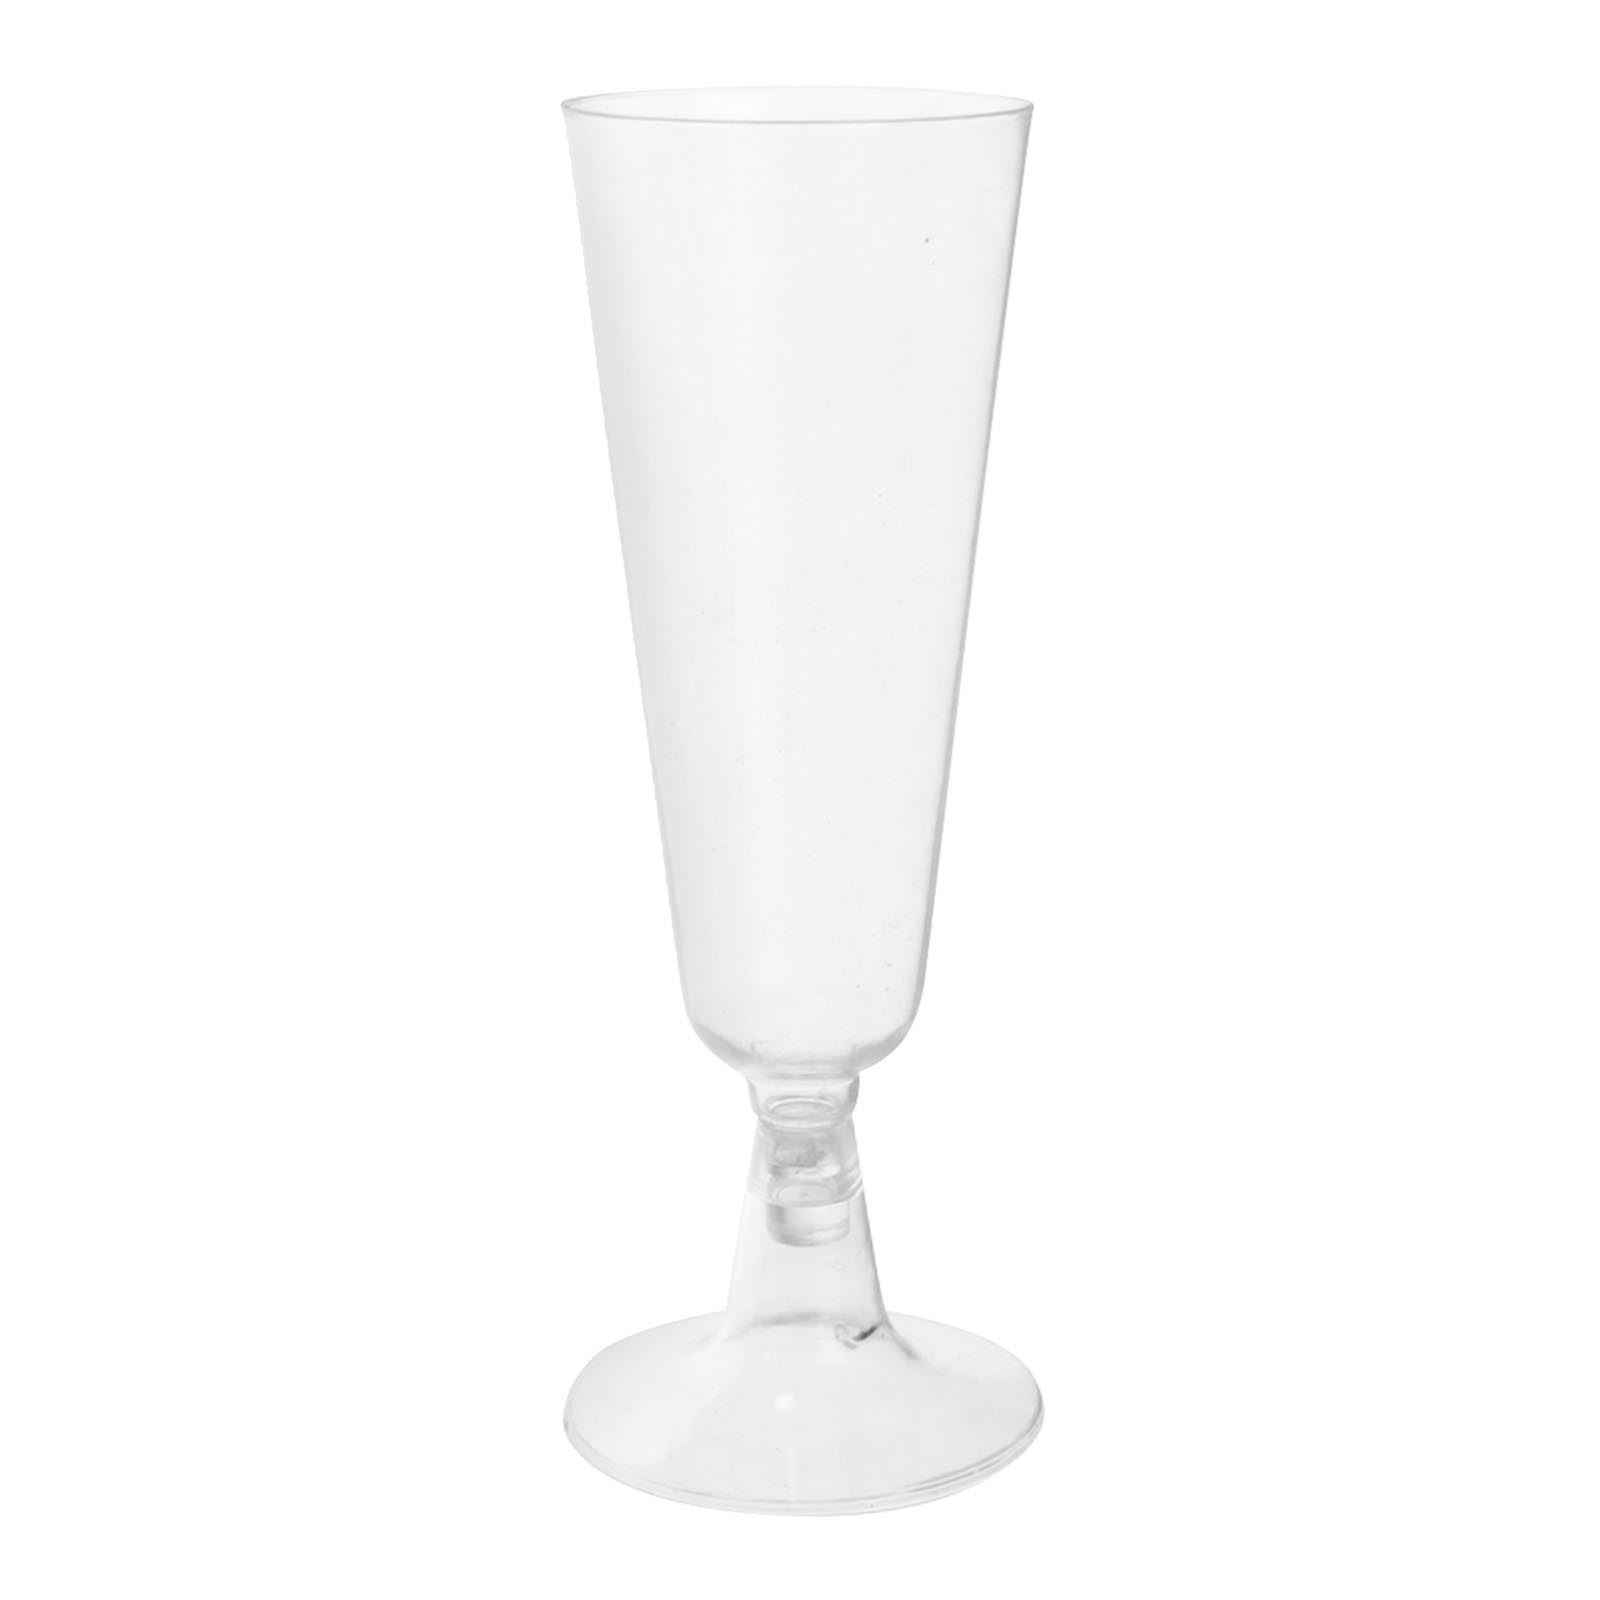 disposable plastic wine glasses canape dishes dessert